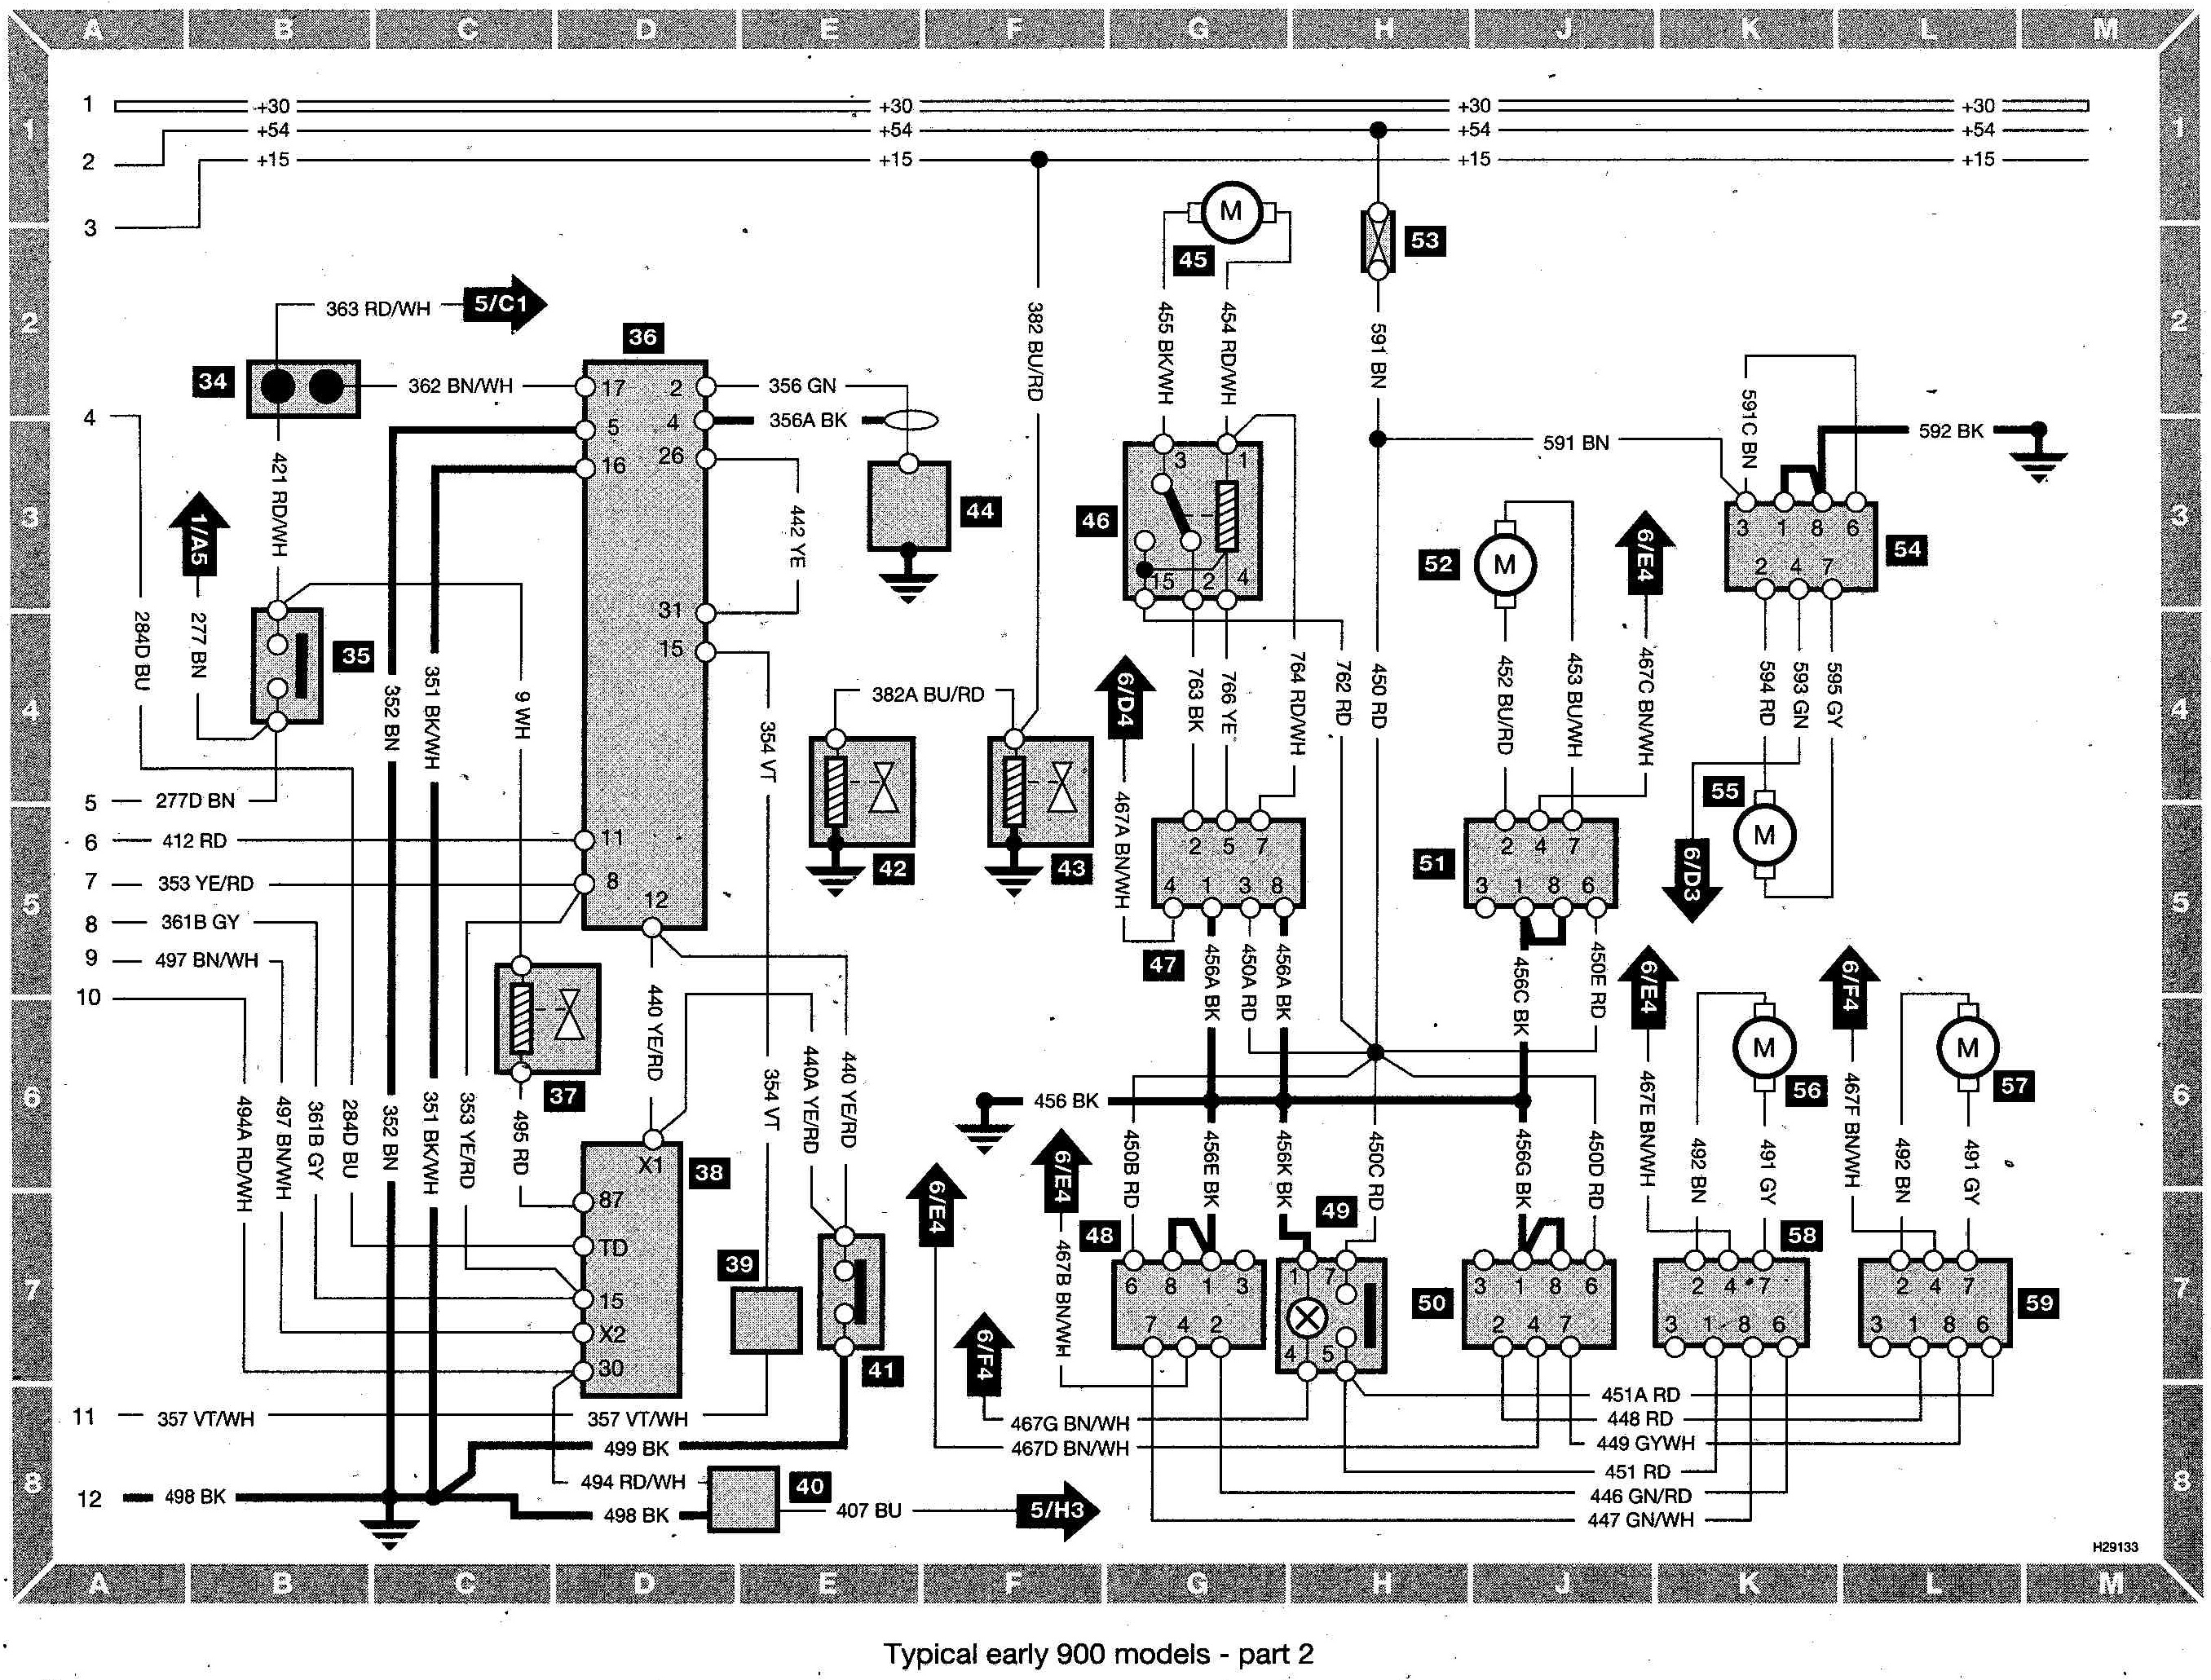 Saab 900 Wiring diagram (early models) part 2?resized665%2C505 saab 93 wiring diagram saab wallpaper \u2022 wiring diagrams j squared co  at soozxer.org